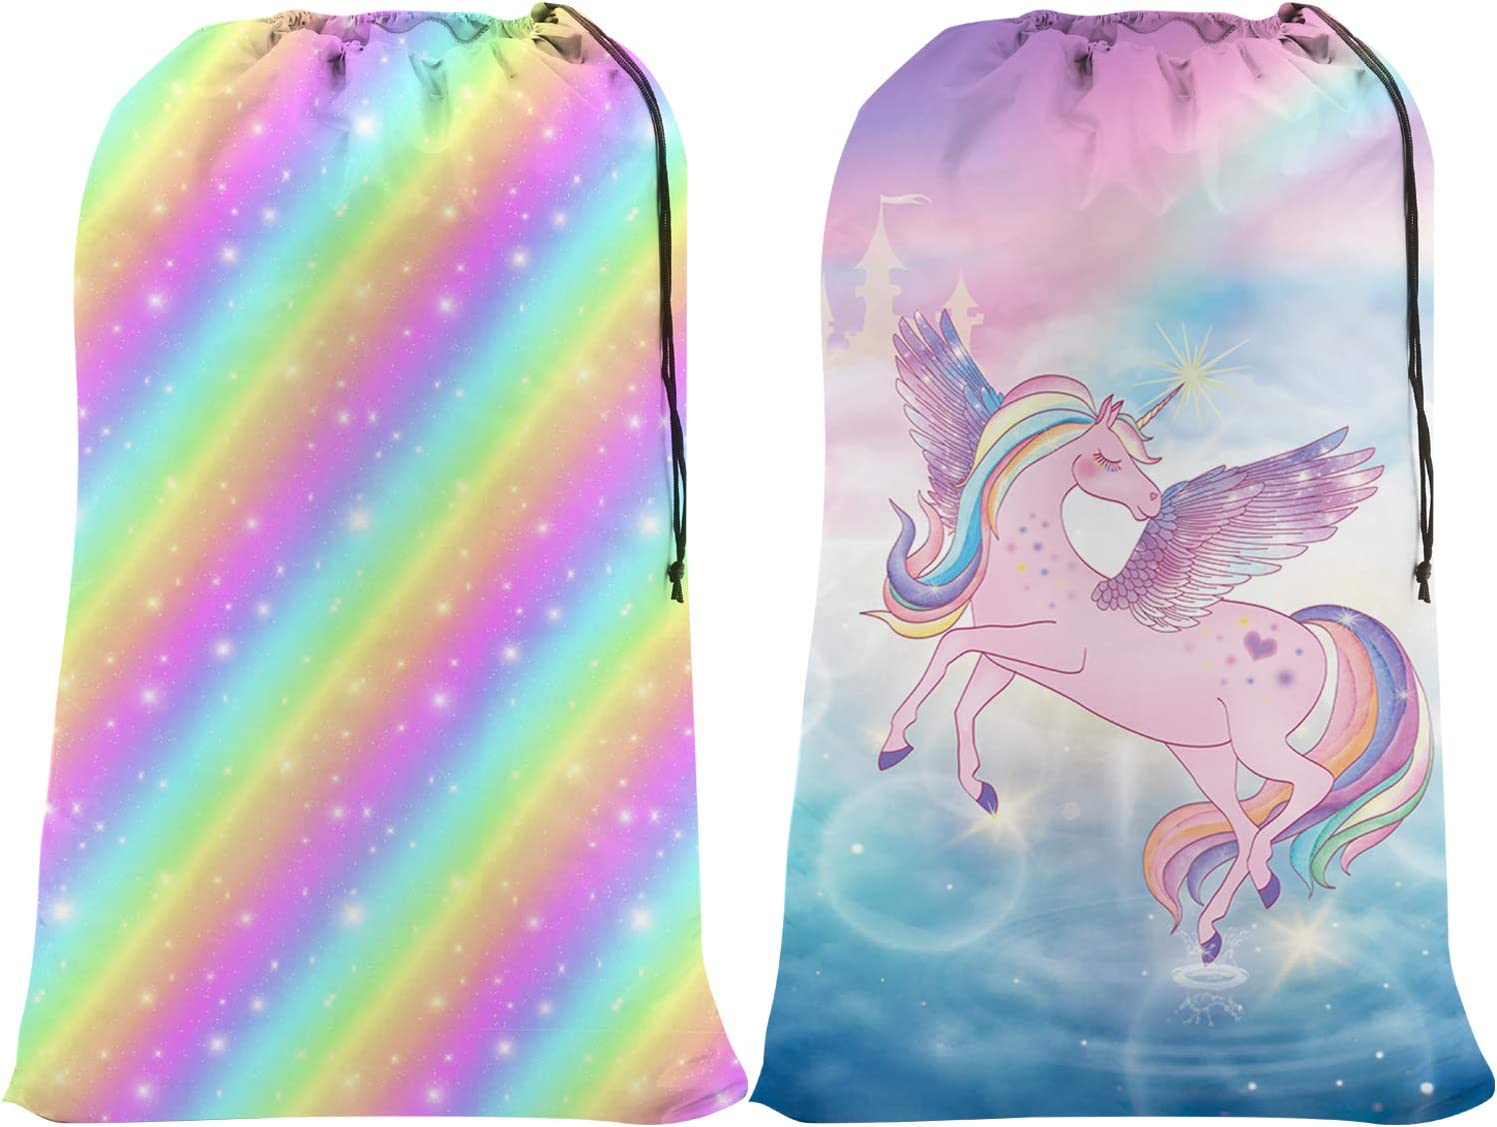 "Nidoul 2 Pack Extra Large Laundry Bag, Heavy Duty Travel Laundry Bag, Drawstring Closure Dirty Clothes Bag, Durable Rip-Stop Bag for Camp Dorm, Machine Washable 24"" x 36"" (Unicorn Rainbow)"